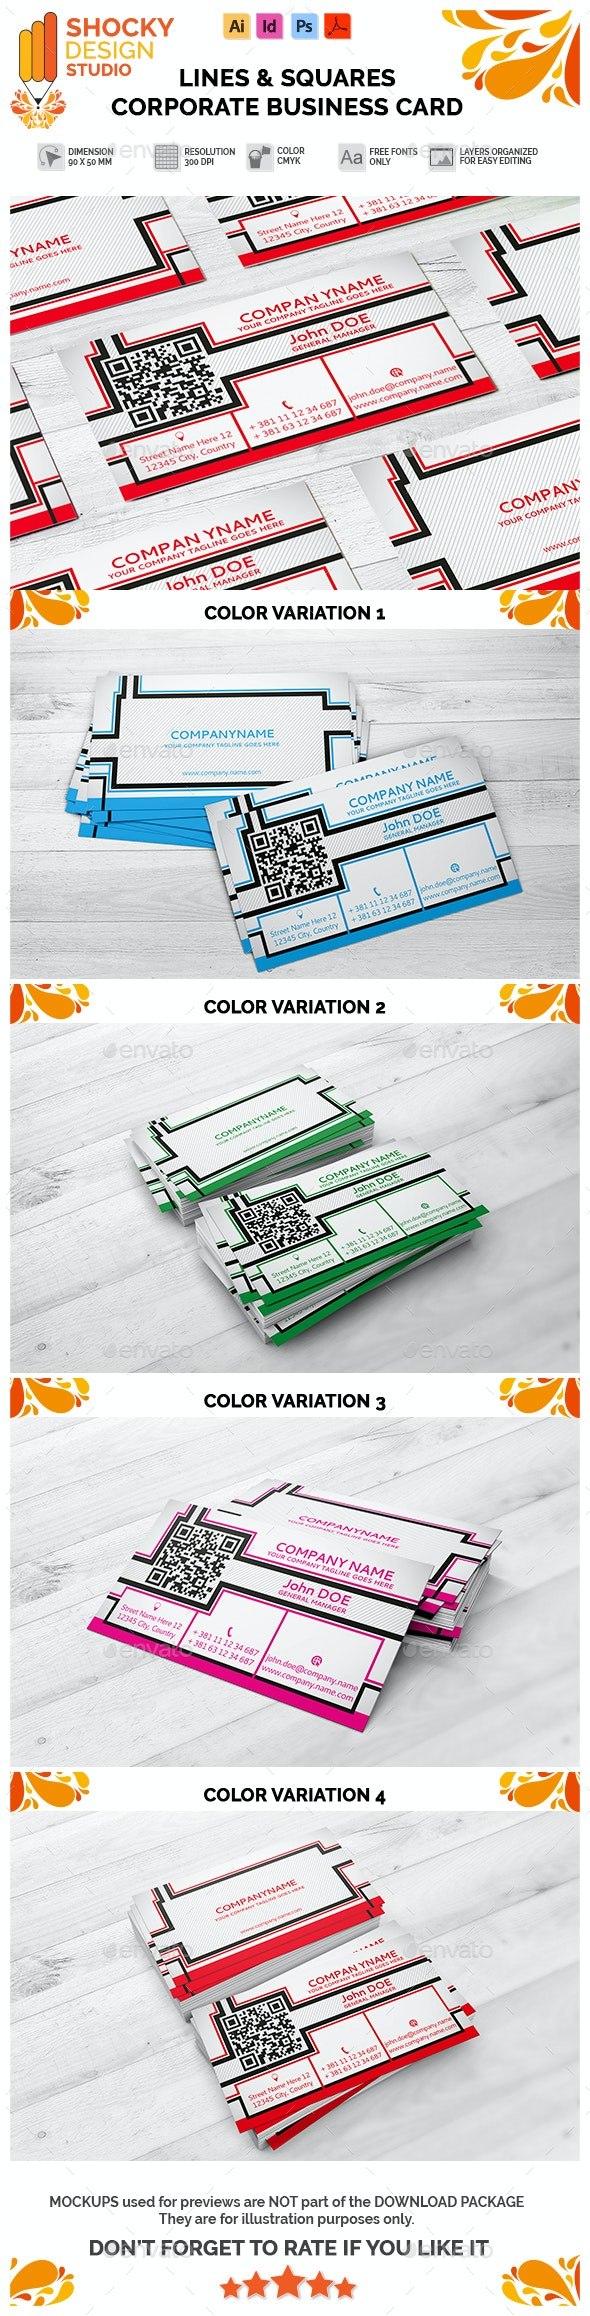 Corporate Business Card Lines & Squares Template - Corporate Business Cards